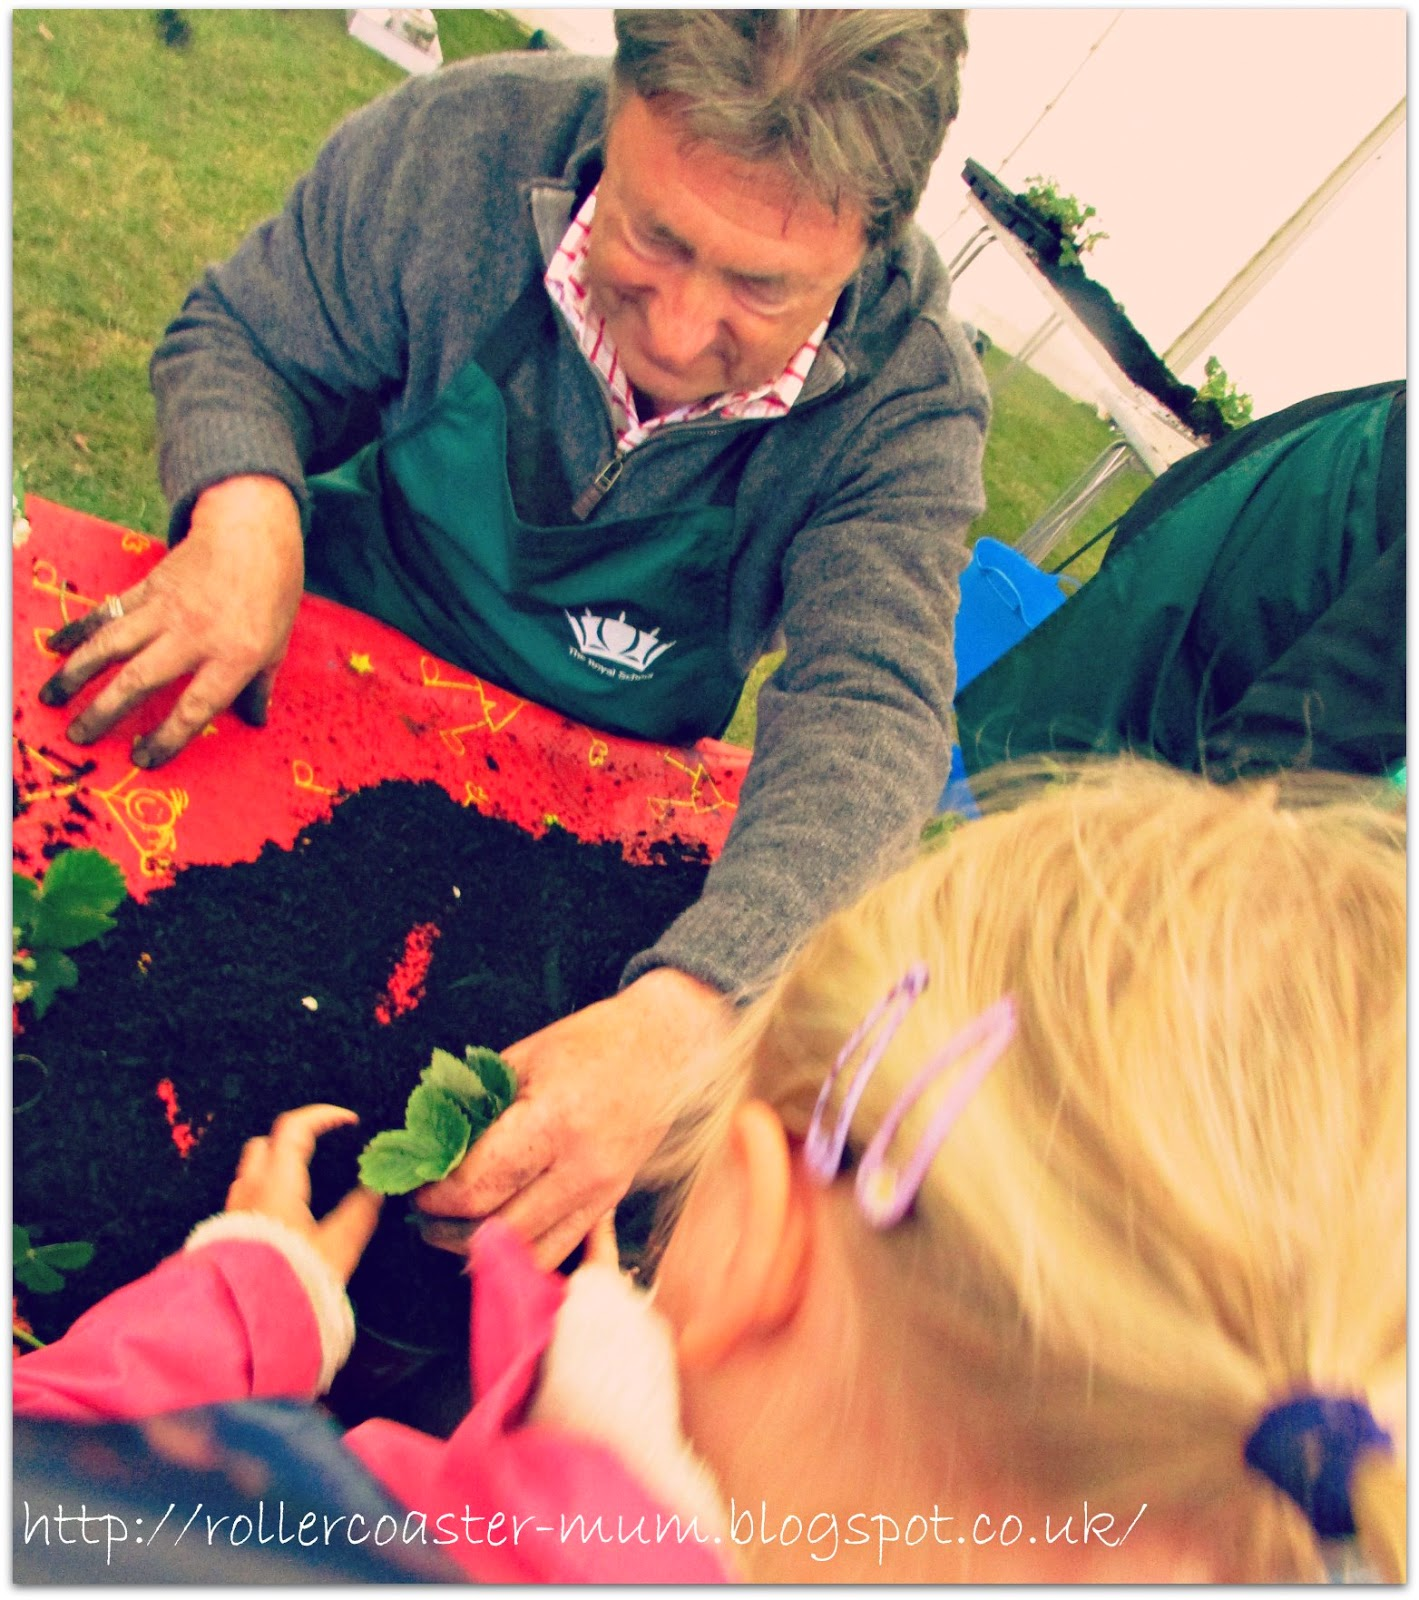 Alan Titchmarsh helping plant strawberry plants at the Royal School's Grow For It